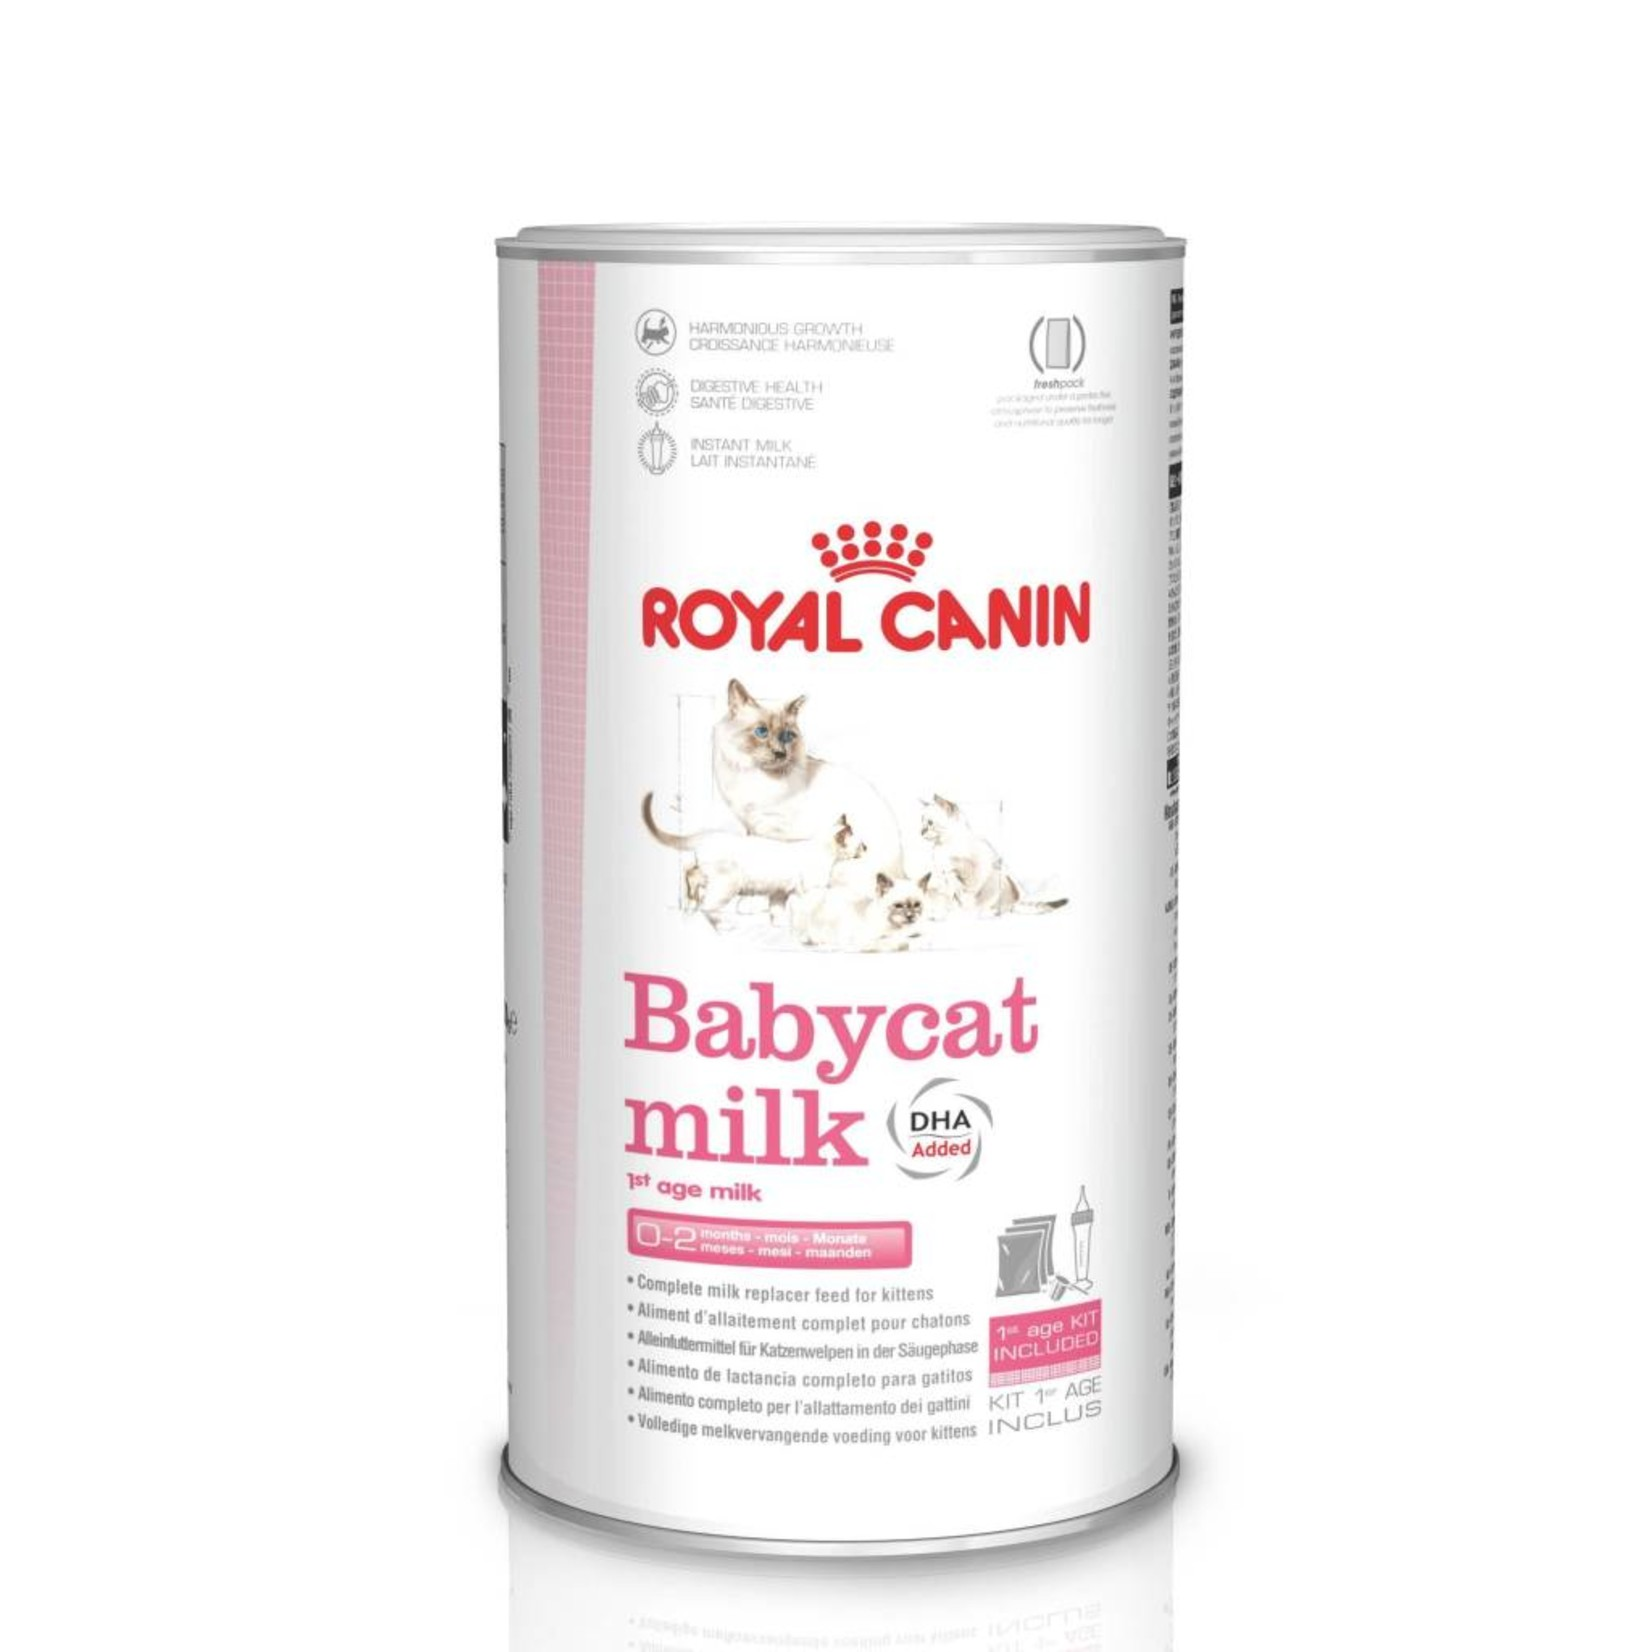 Royal Canin Babycat Milk replacer for Kittens, 300g